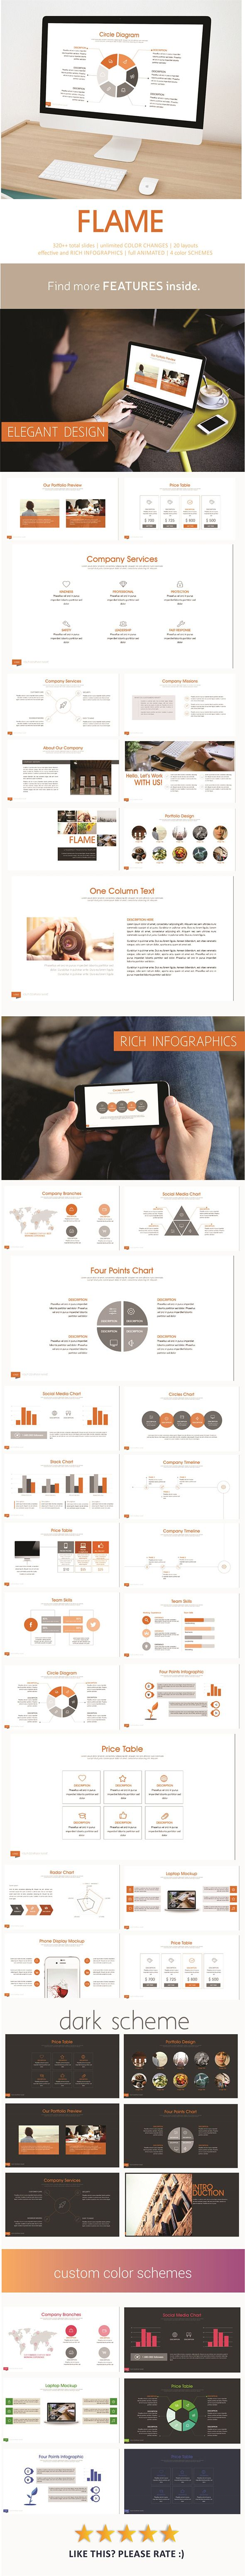 Flame PowerPoint Template #design #slides Download: http://graphicriver.net/item/flame-powerpoint-template/12810354?ref=ksioks